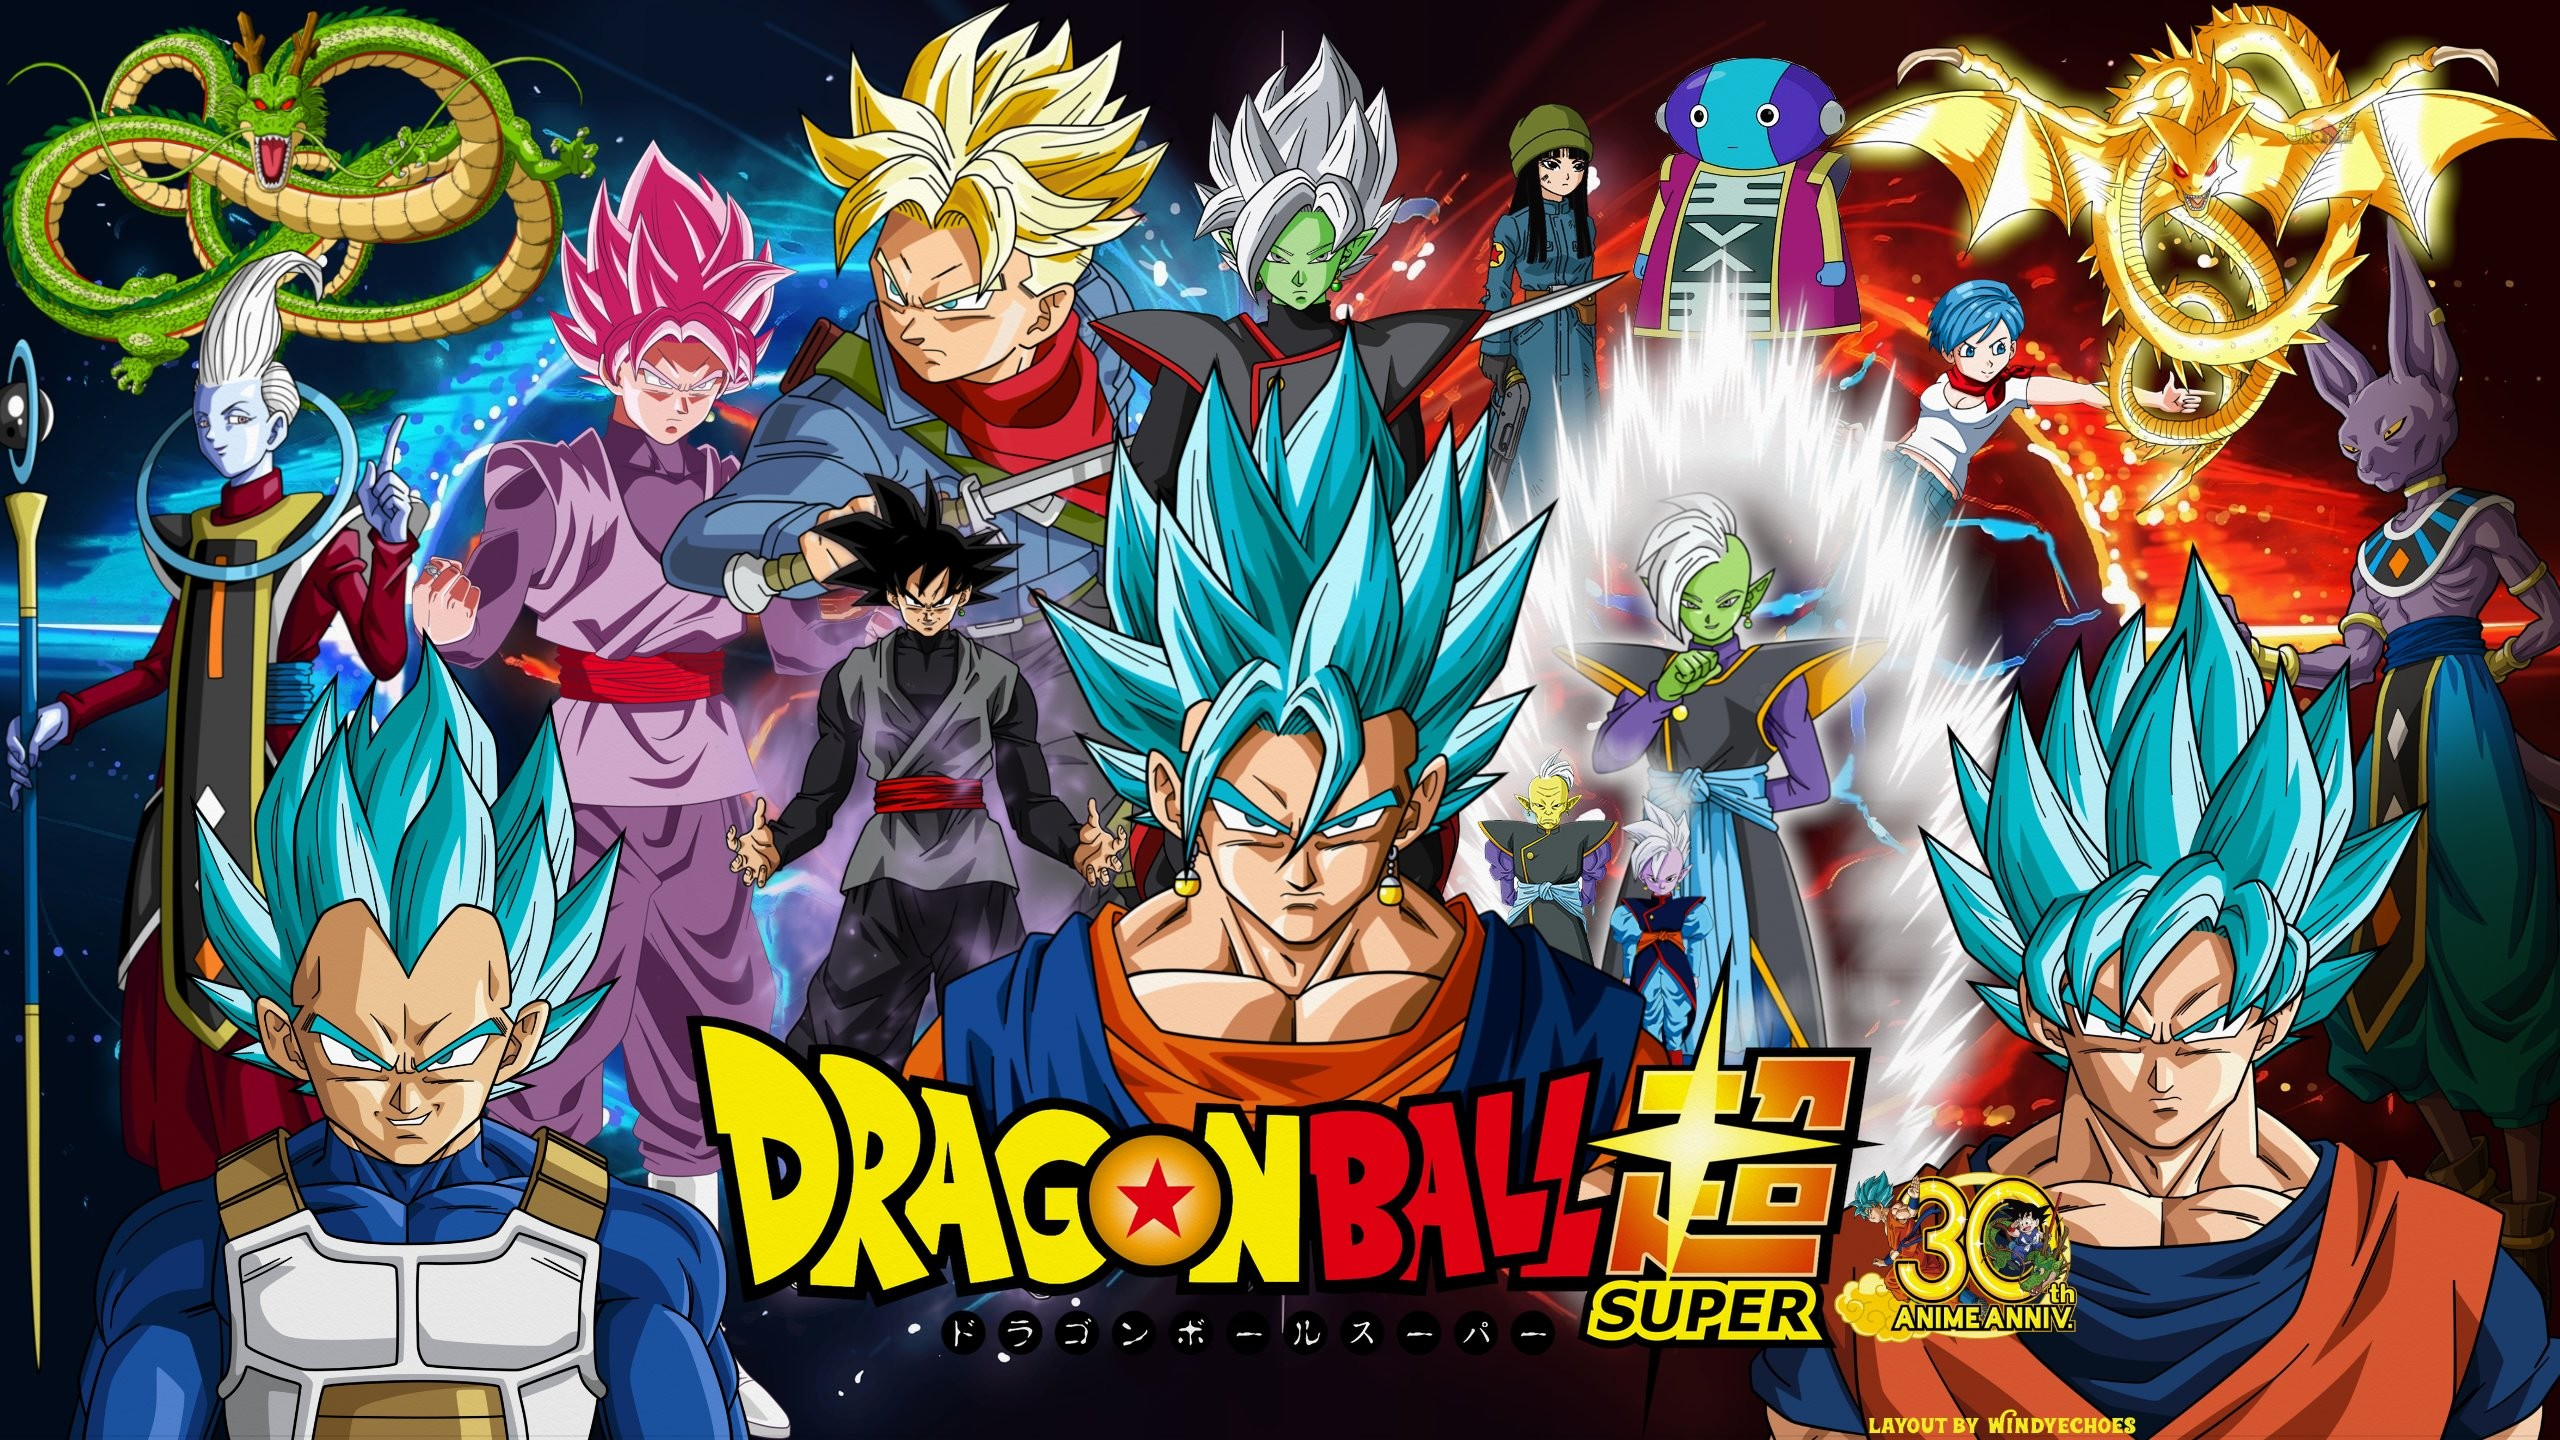 Dragon Ball Super Wallpaper Hd 1920x1080: Dragon Ball Super Wallpaper ·① Download Free Awesome Full